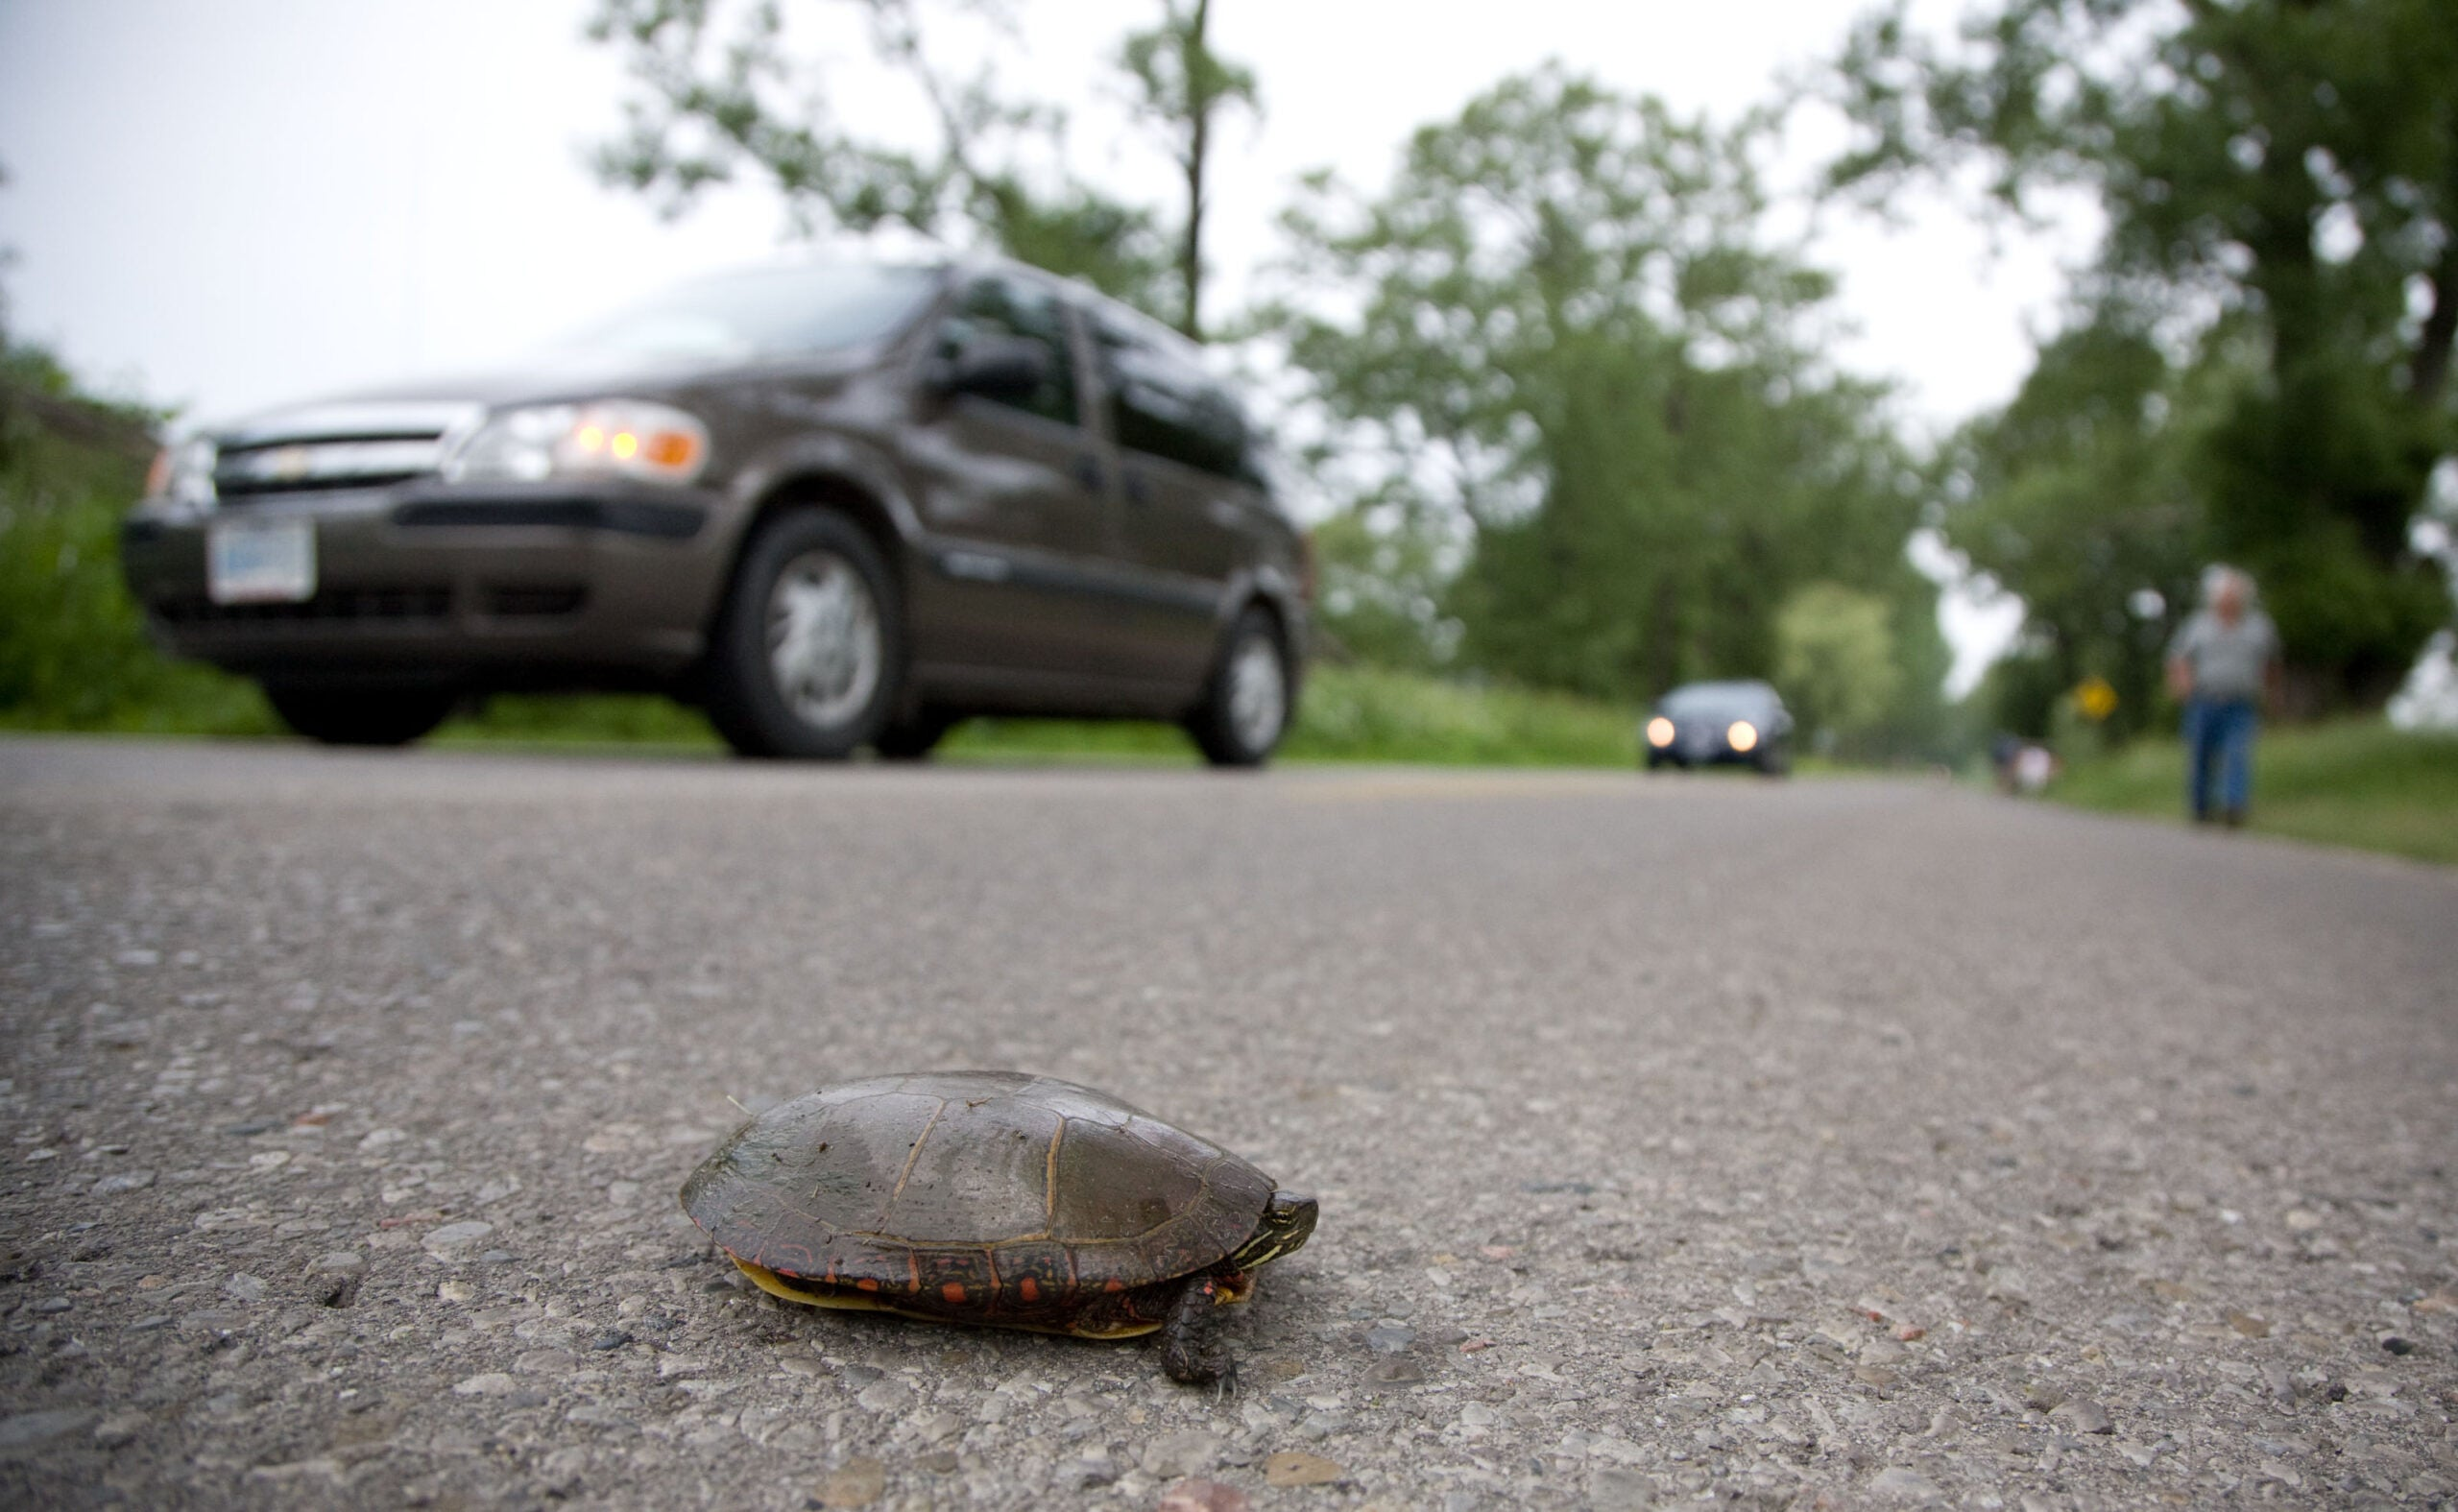 How one community rallied to save turtles from becoming roadkill